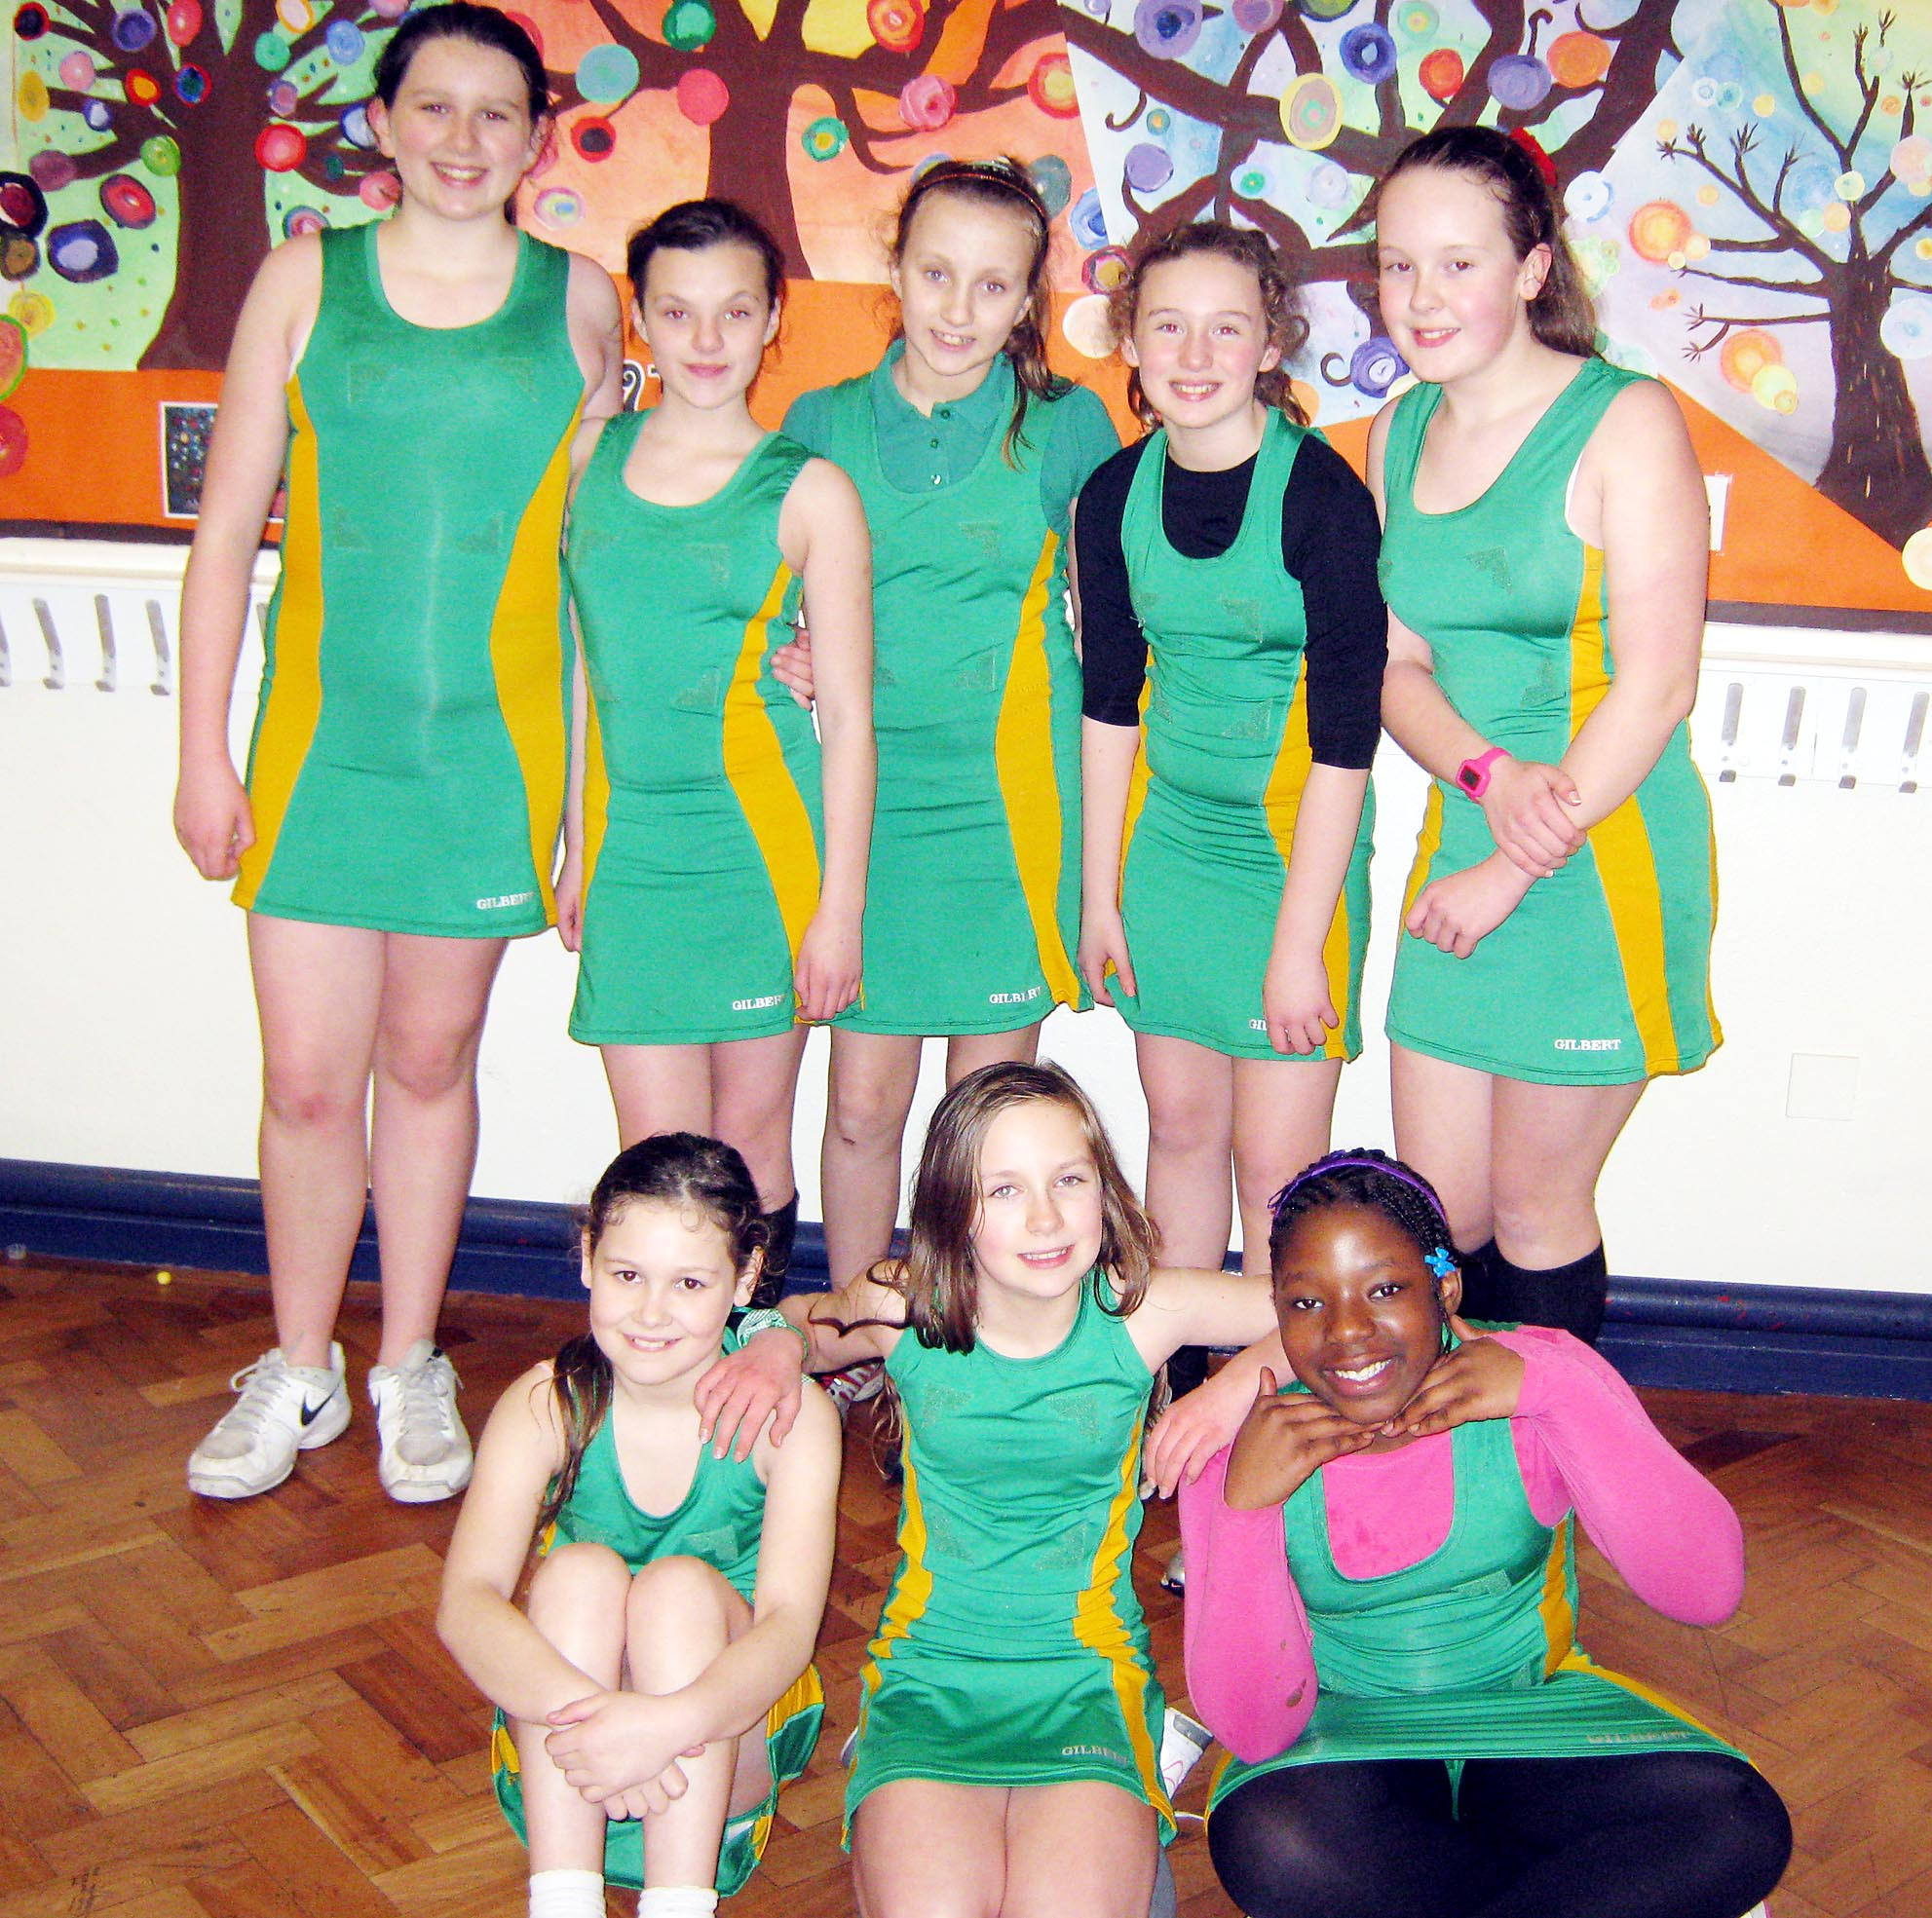 RALLY TO WIN Back: Caitlin Sharkey, Megan Dott, Grace Lee, Niamh Raftery, Emily Kelly; Front: Macey Rushton, Olivia Stanway, Jayda Yeboah